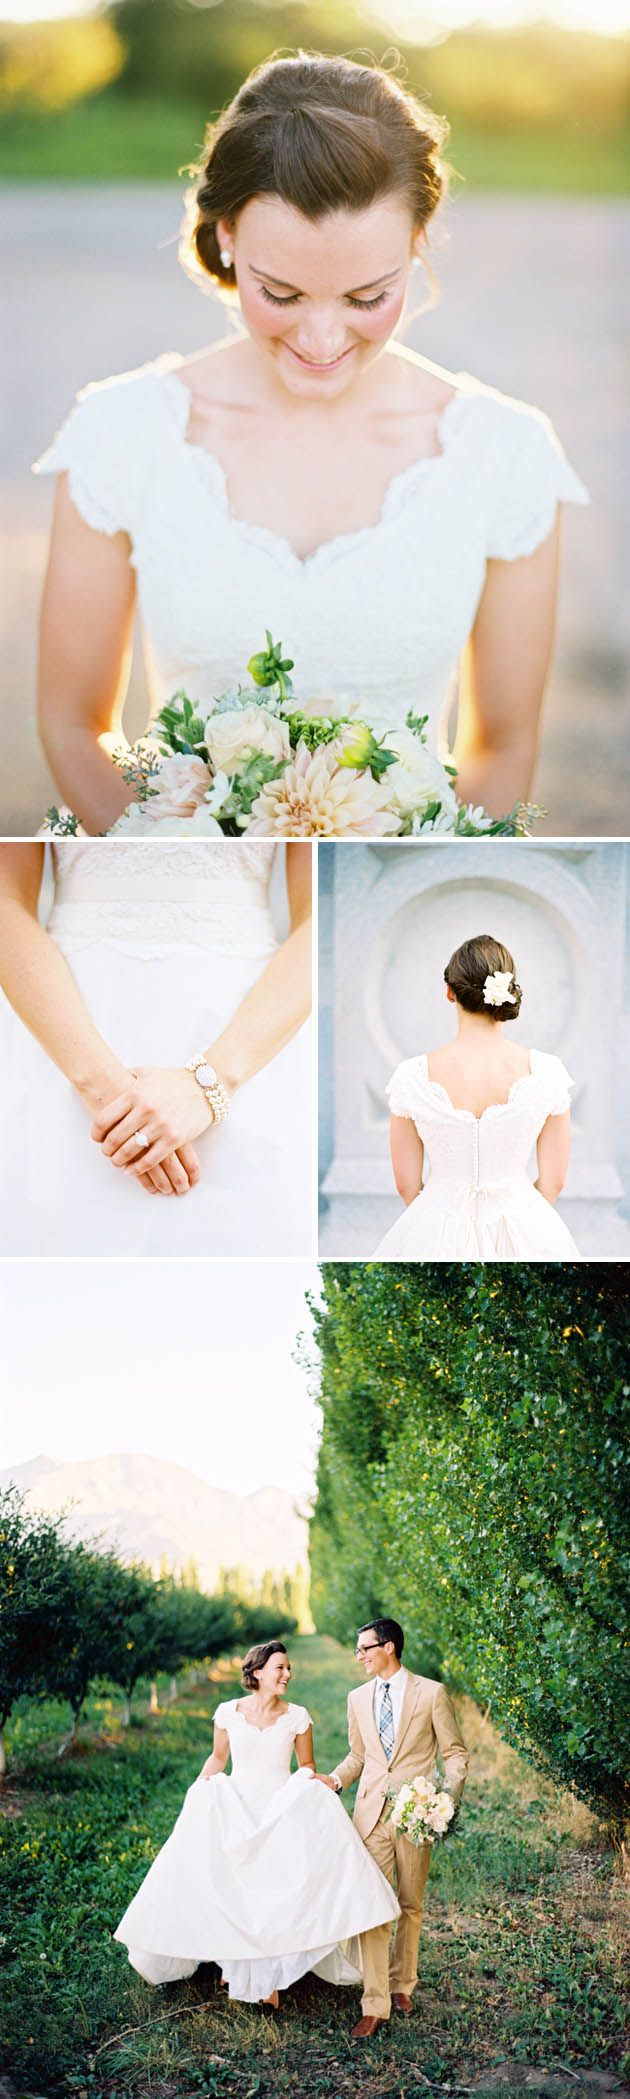 wedding-dress-with-scalloped-neck...not that I need another wedding dress, but I love the scallop